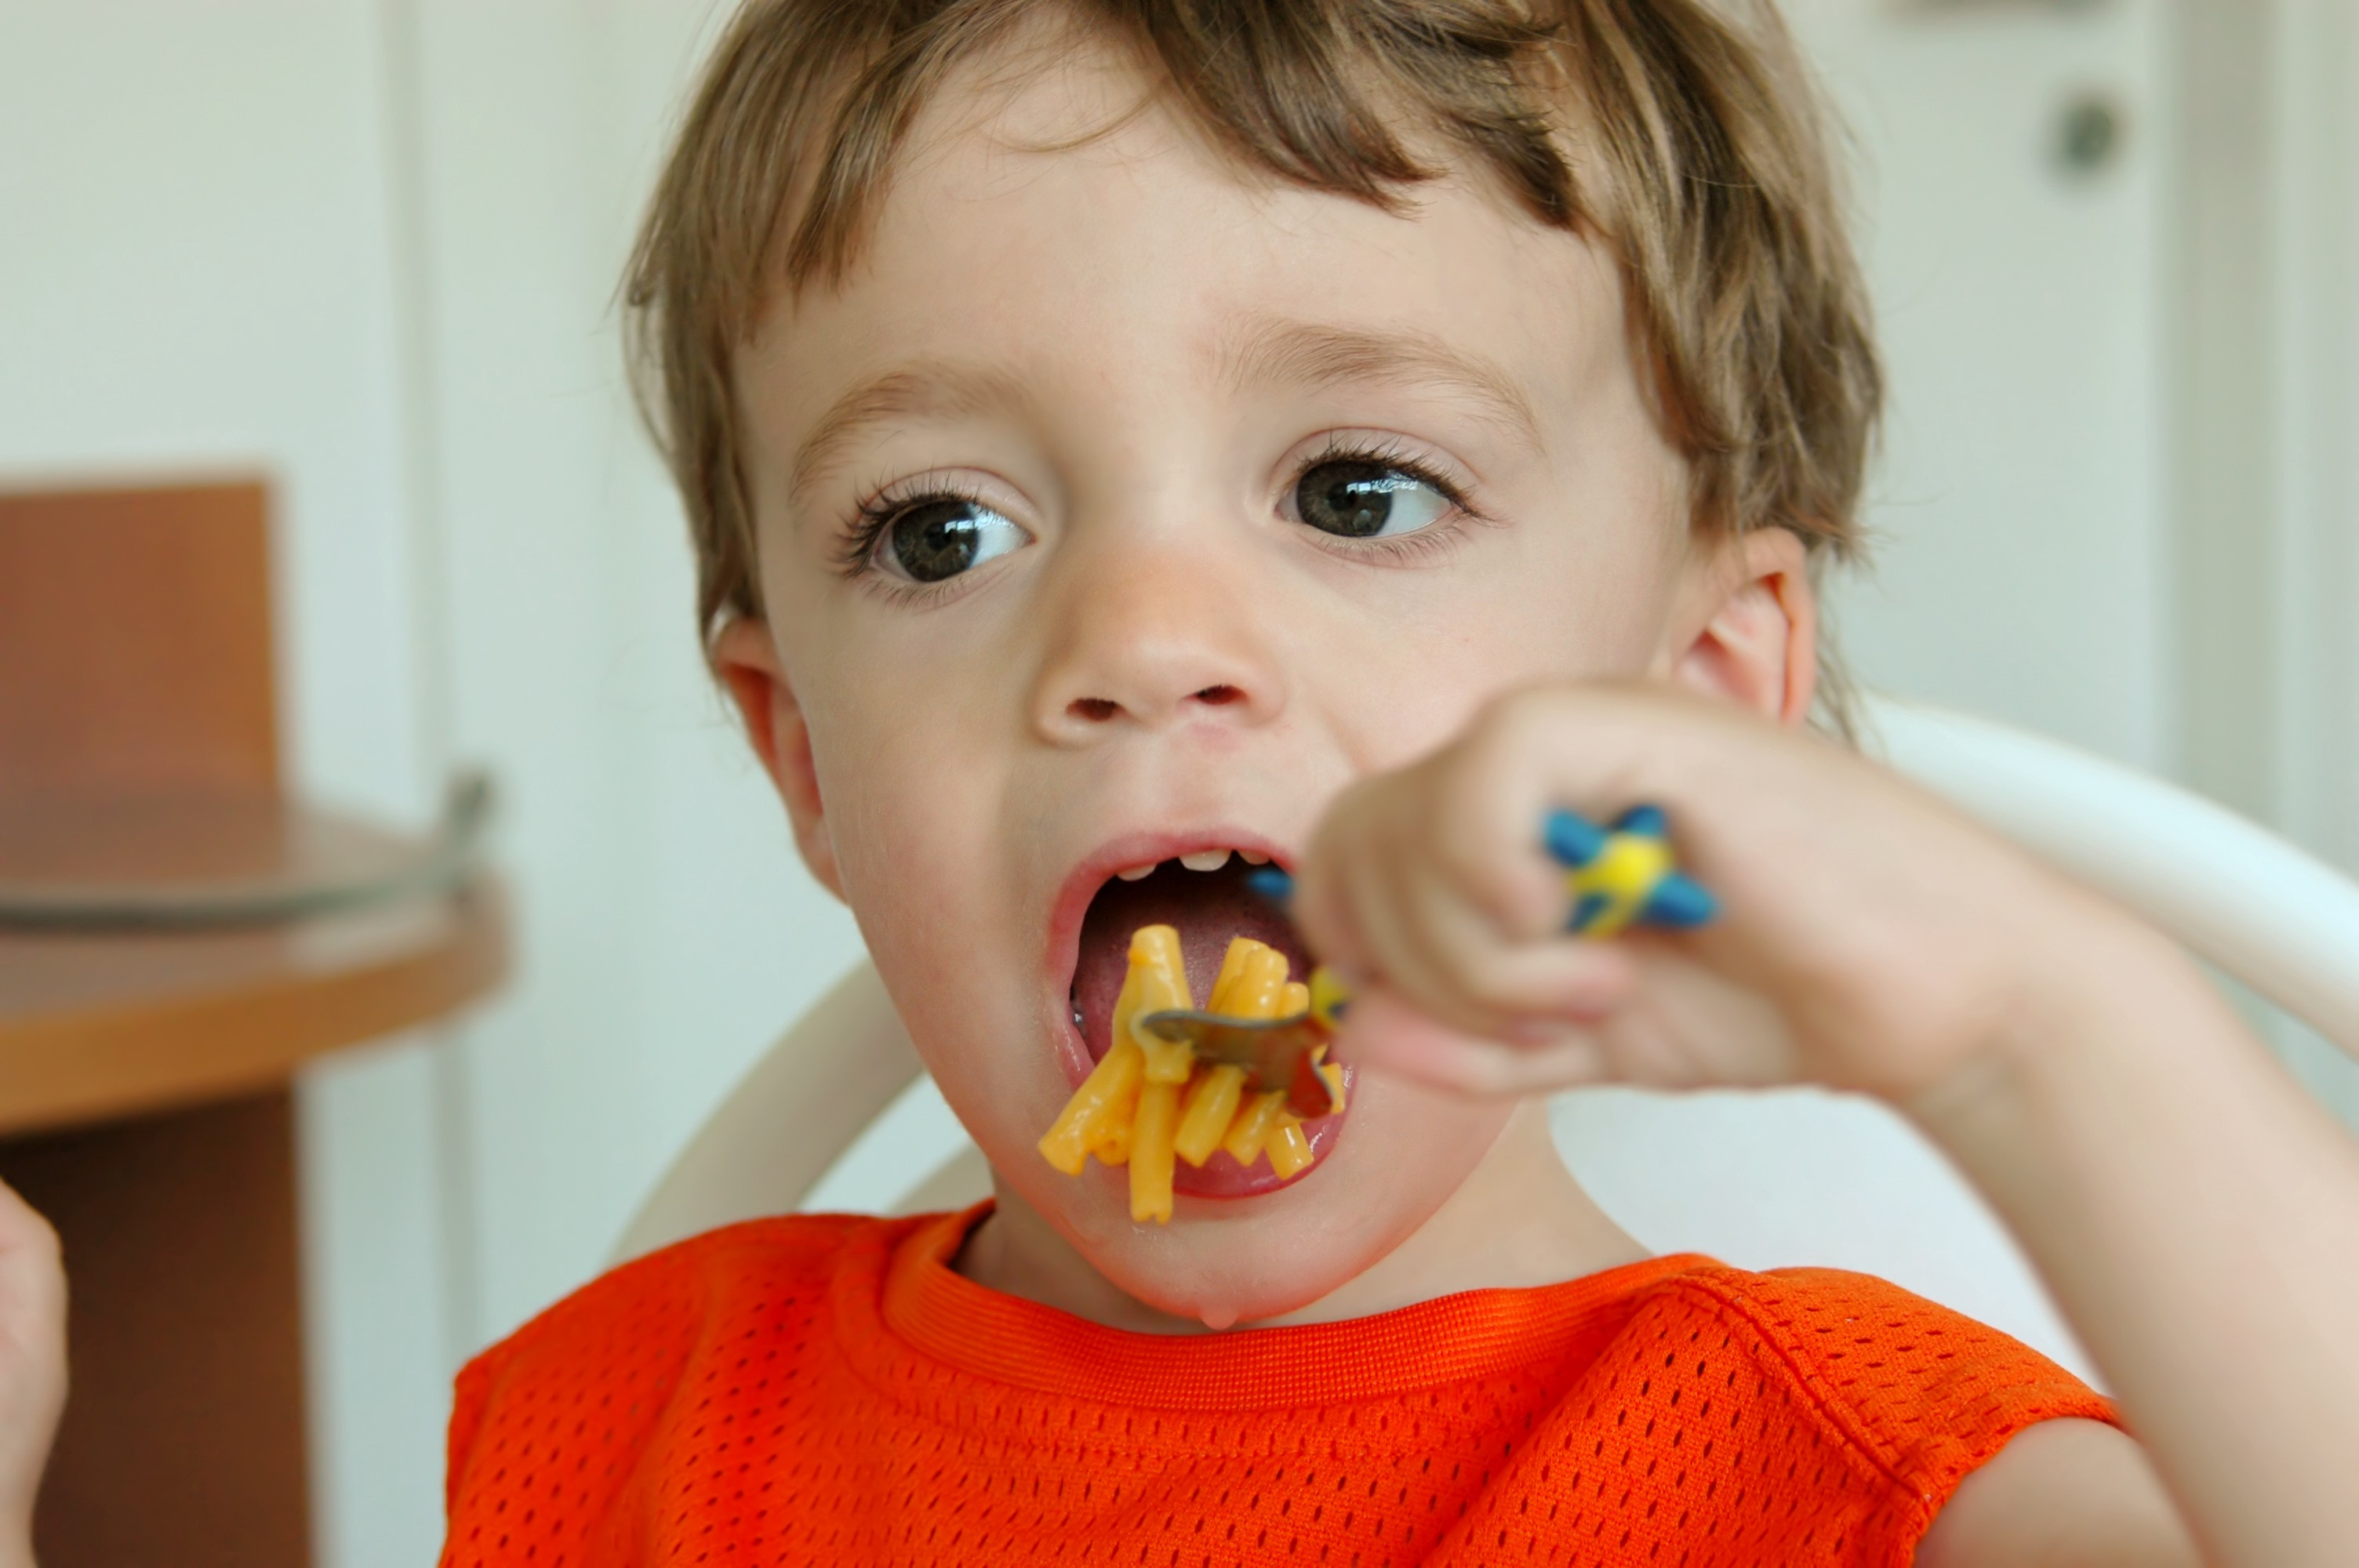 Little boy about to eat a spoonful of macaroni and cheese.